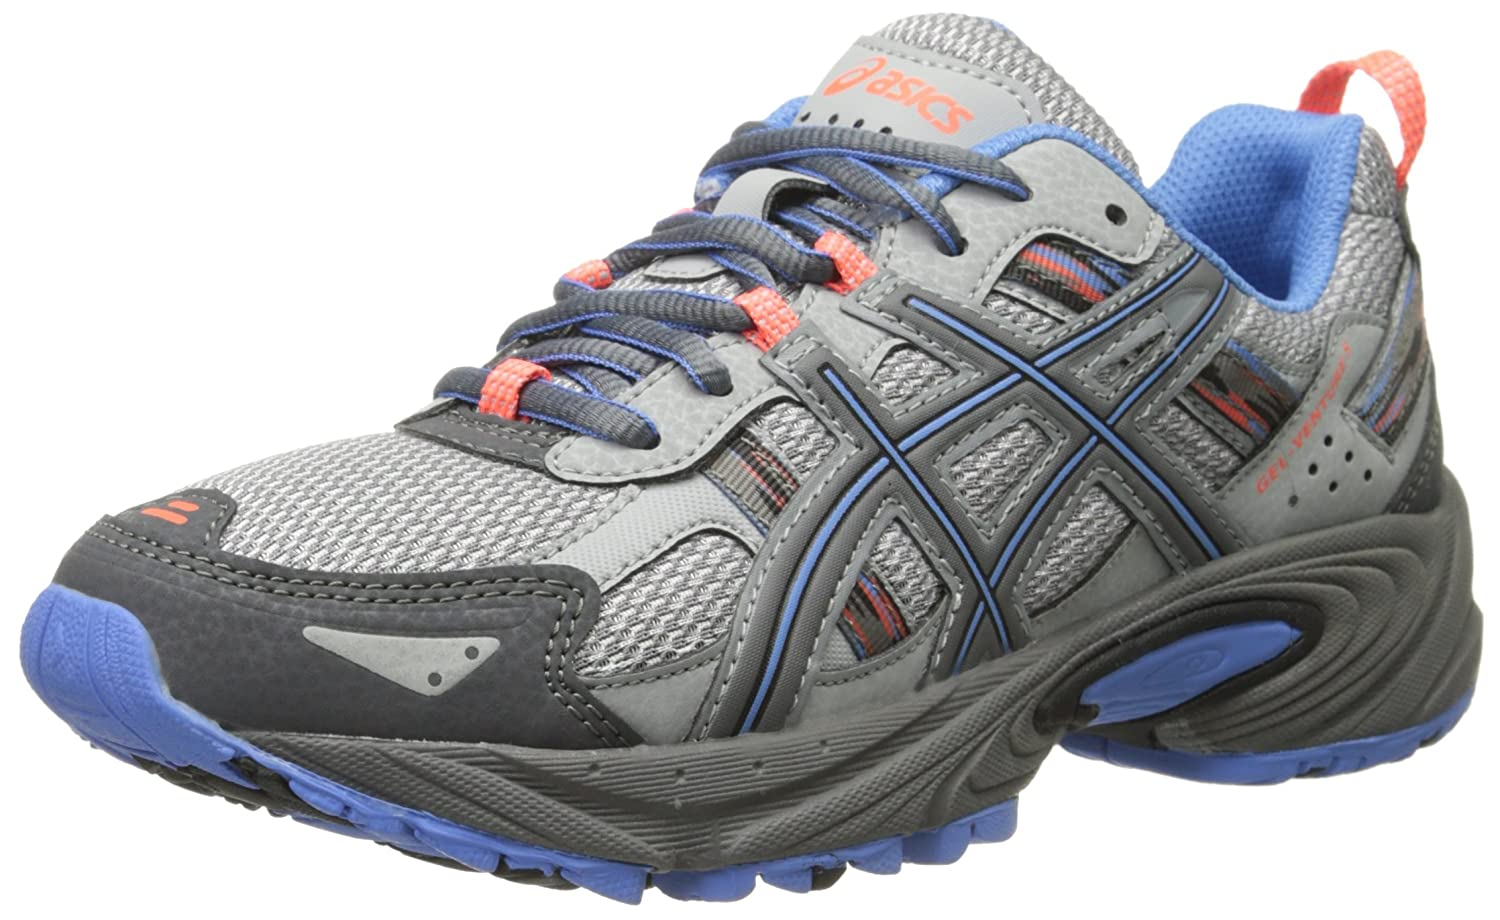 Silver Grey Carbon Dutch bluee ASICS Women's Gel-Venture 5 Running shoes